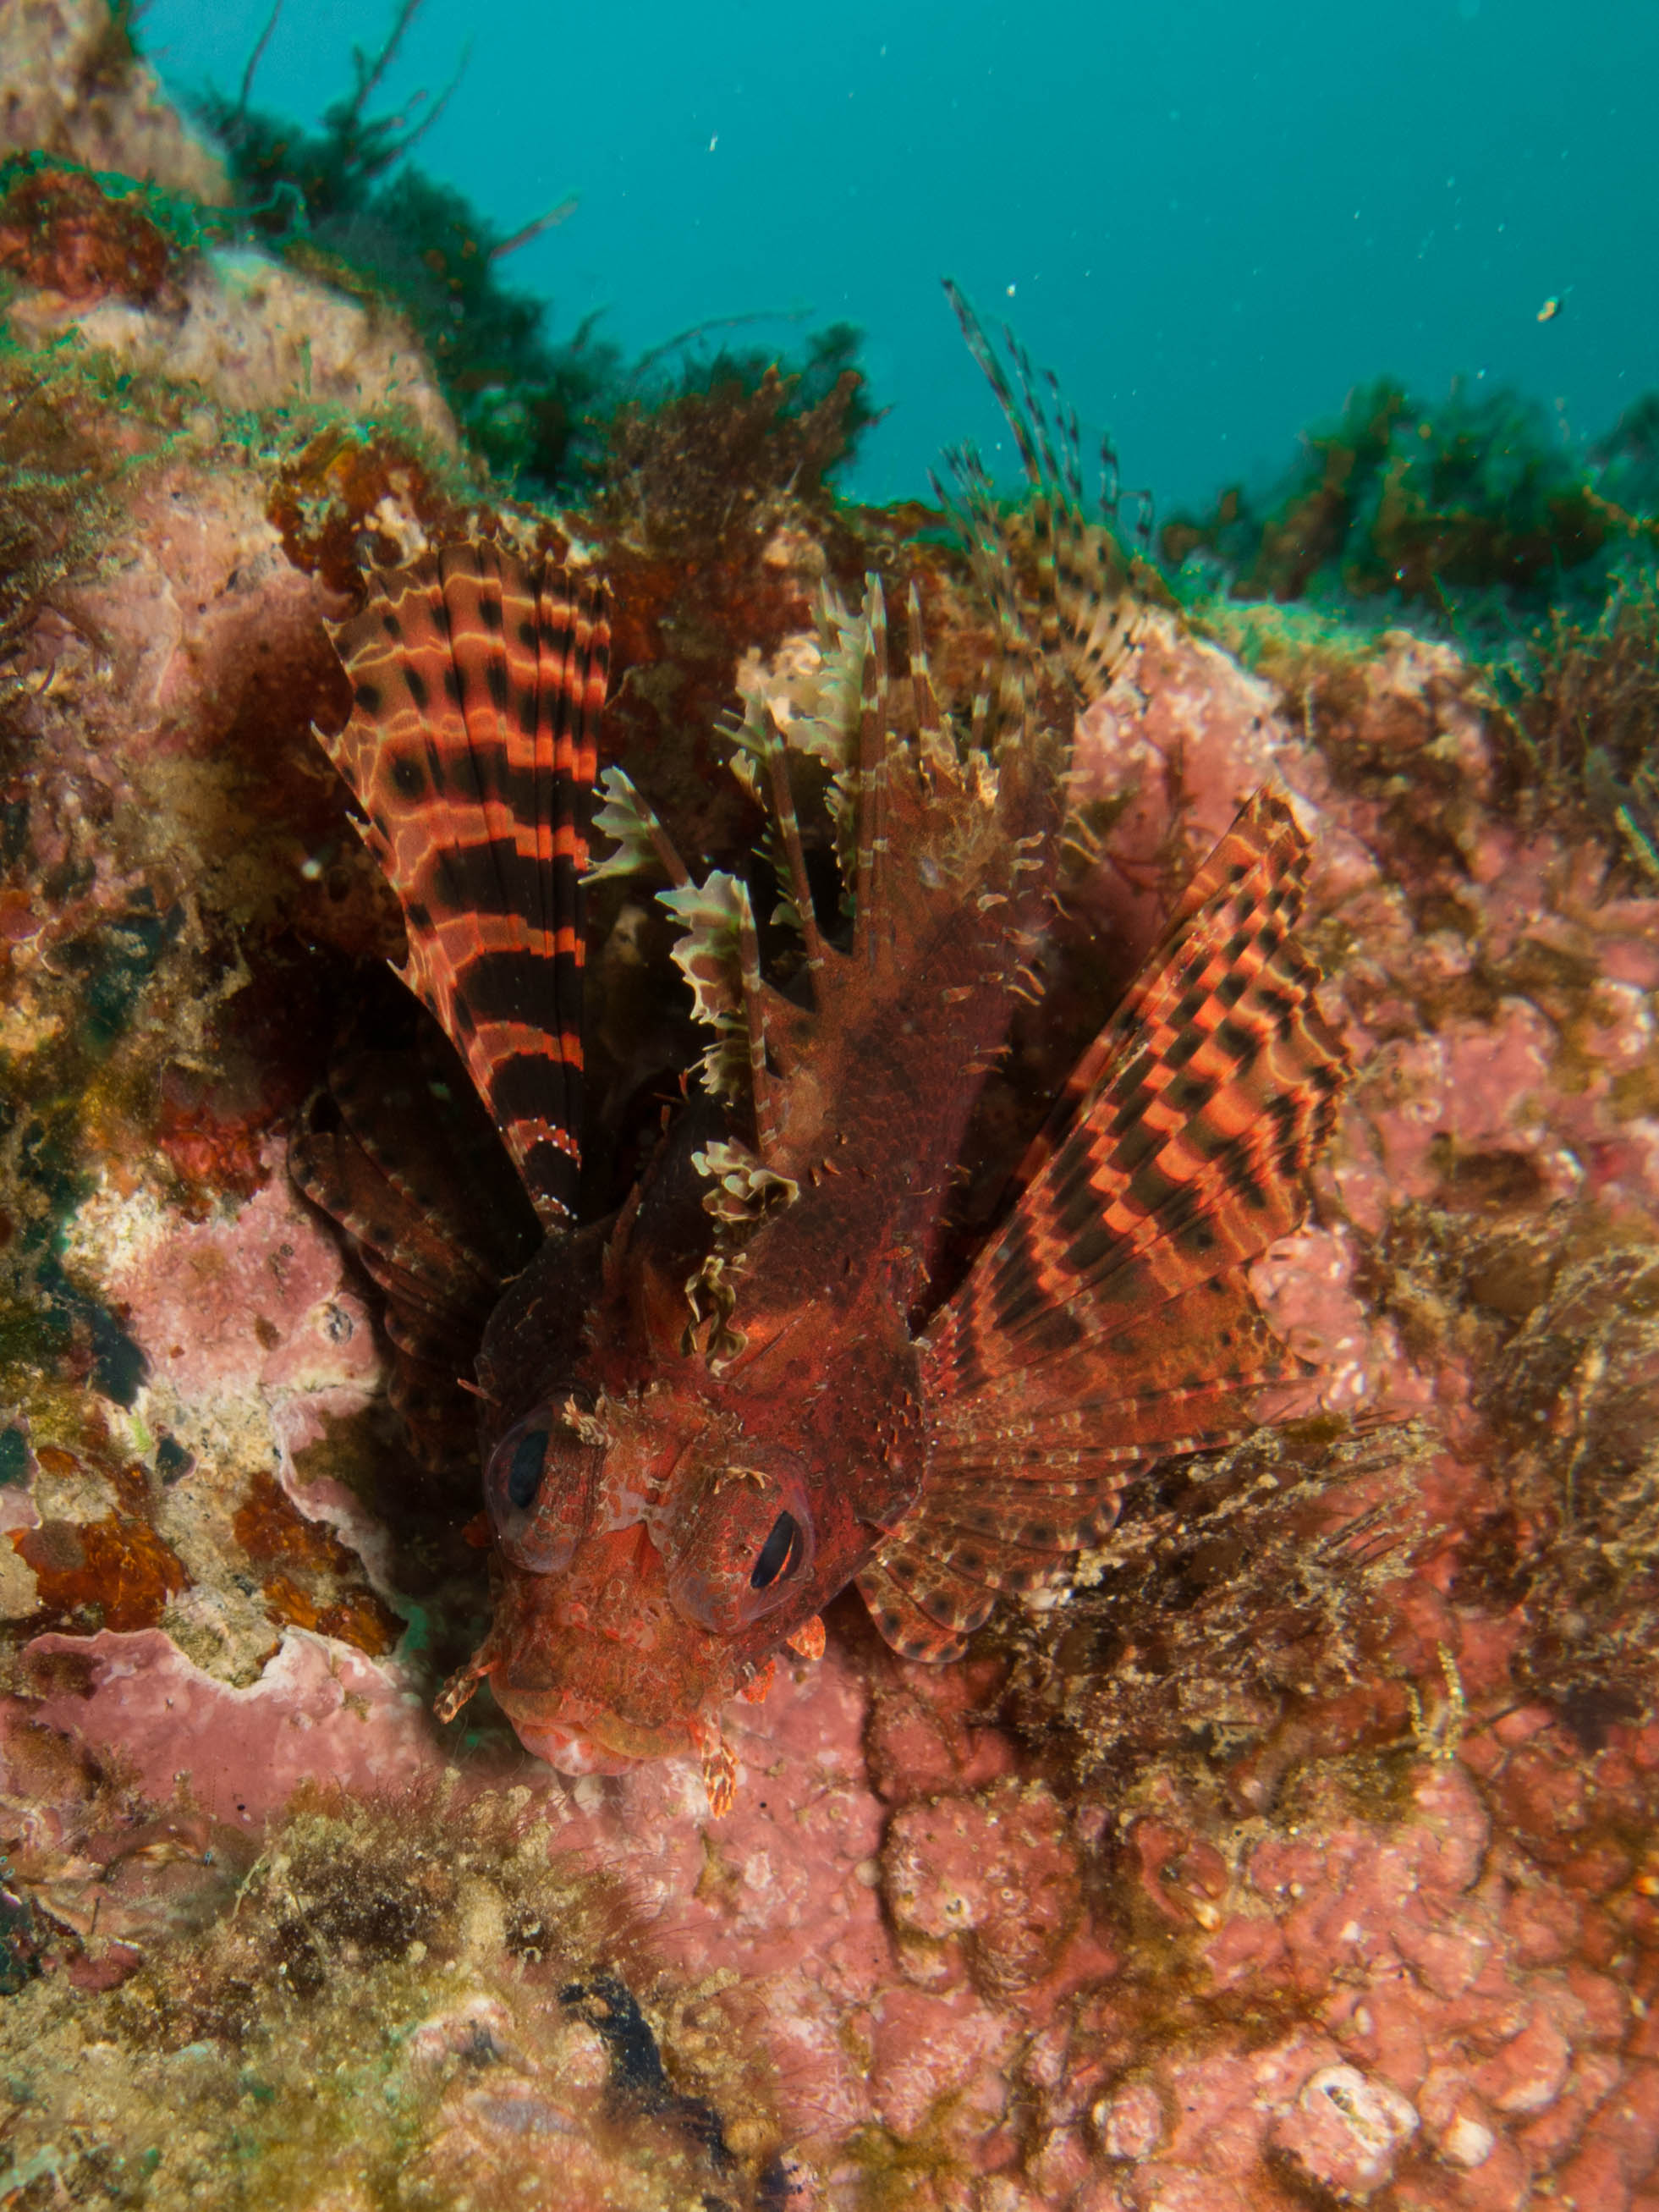 A shortfin lionfish flaunts its beautiful fins on a reef in Indonesia. There are 12 extant species of lionfish, 2 of which have been introduced to the Atlantic.